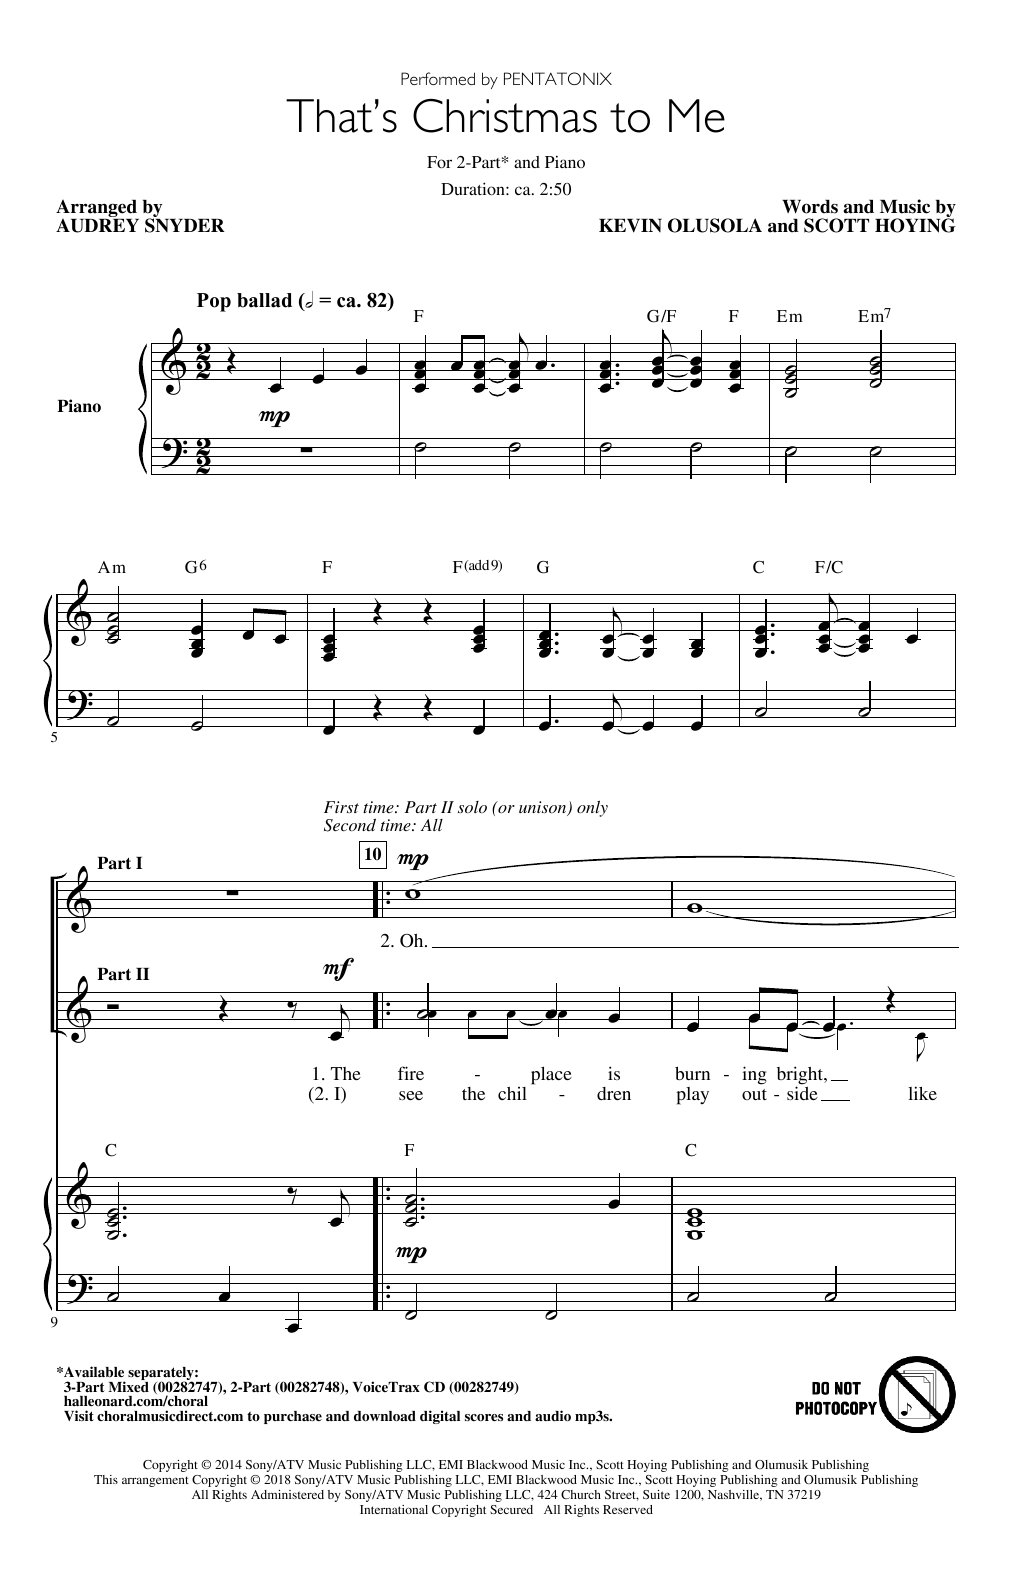 That's Christmas To Me (arr. Audrey Snyder) (2-Part Choir)